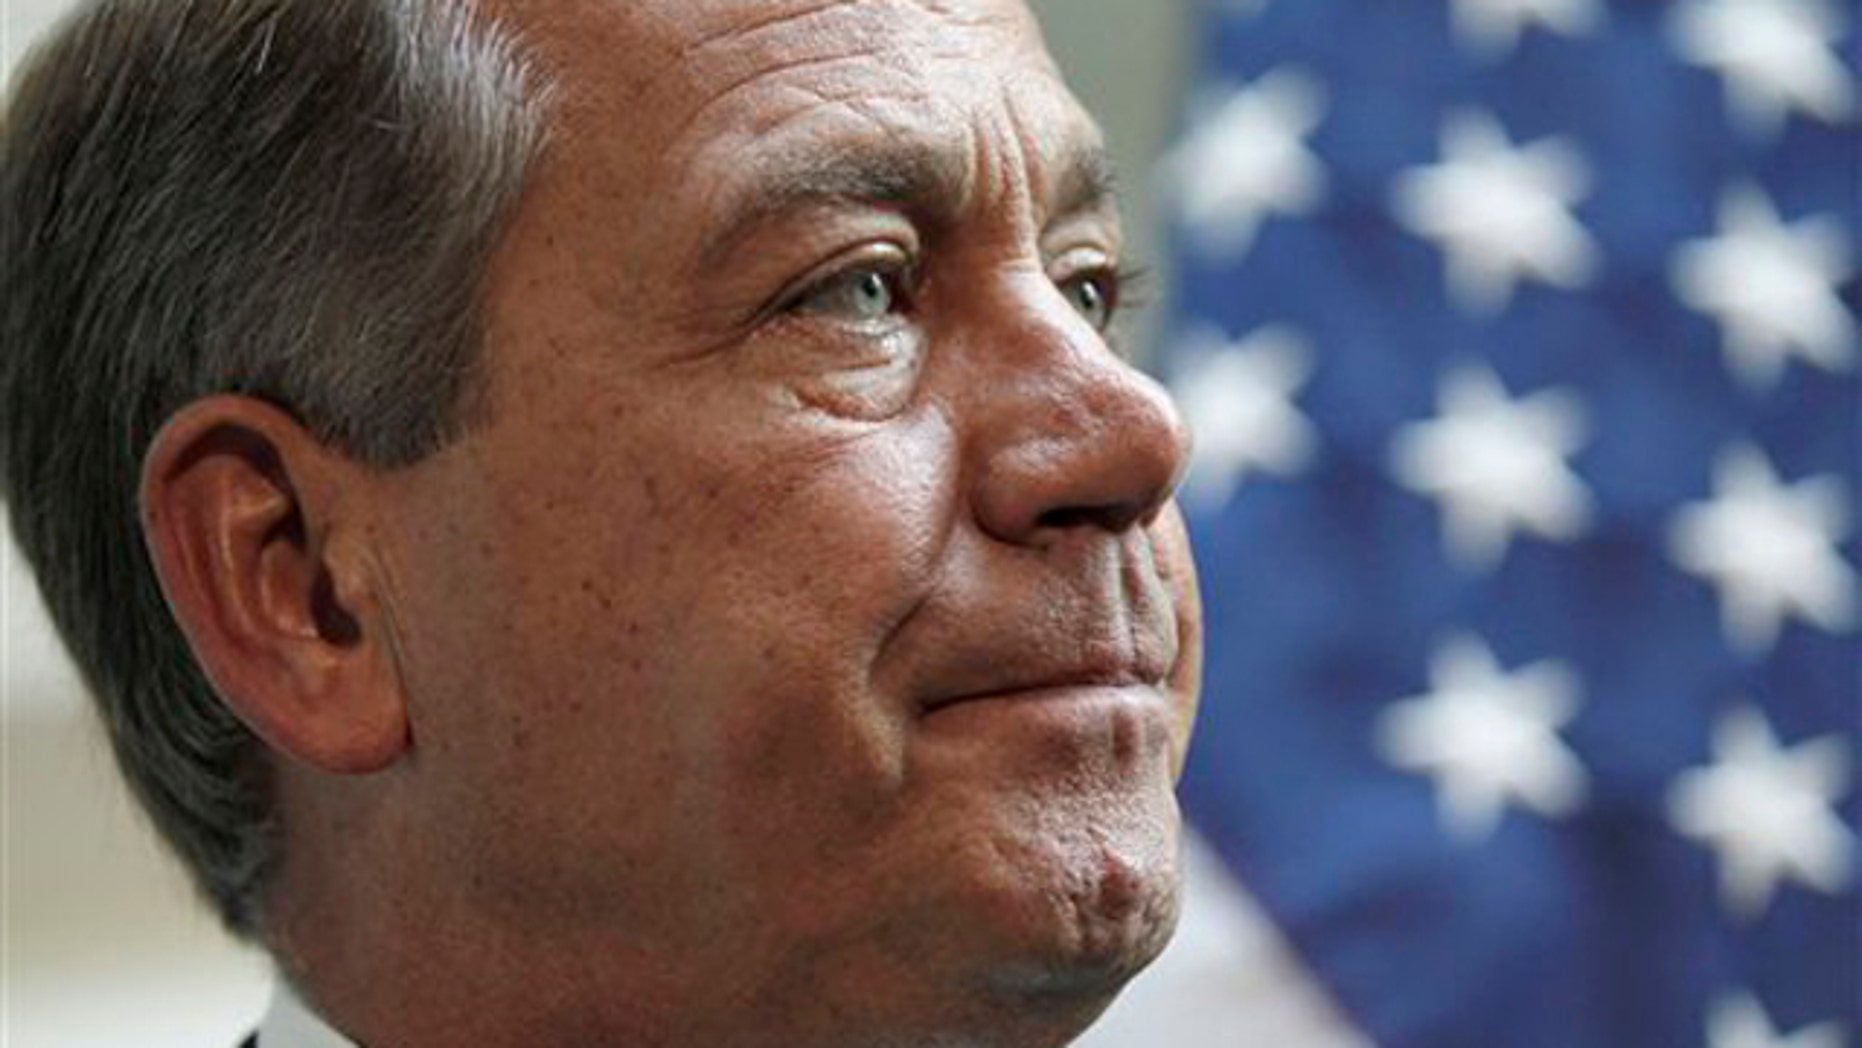 House Speaker John Boehner takes part in a news conference on Capitol Hill Oct. 4.